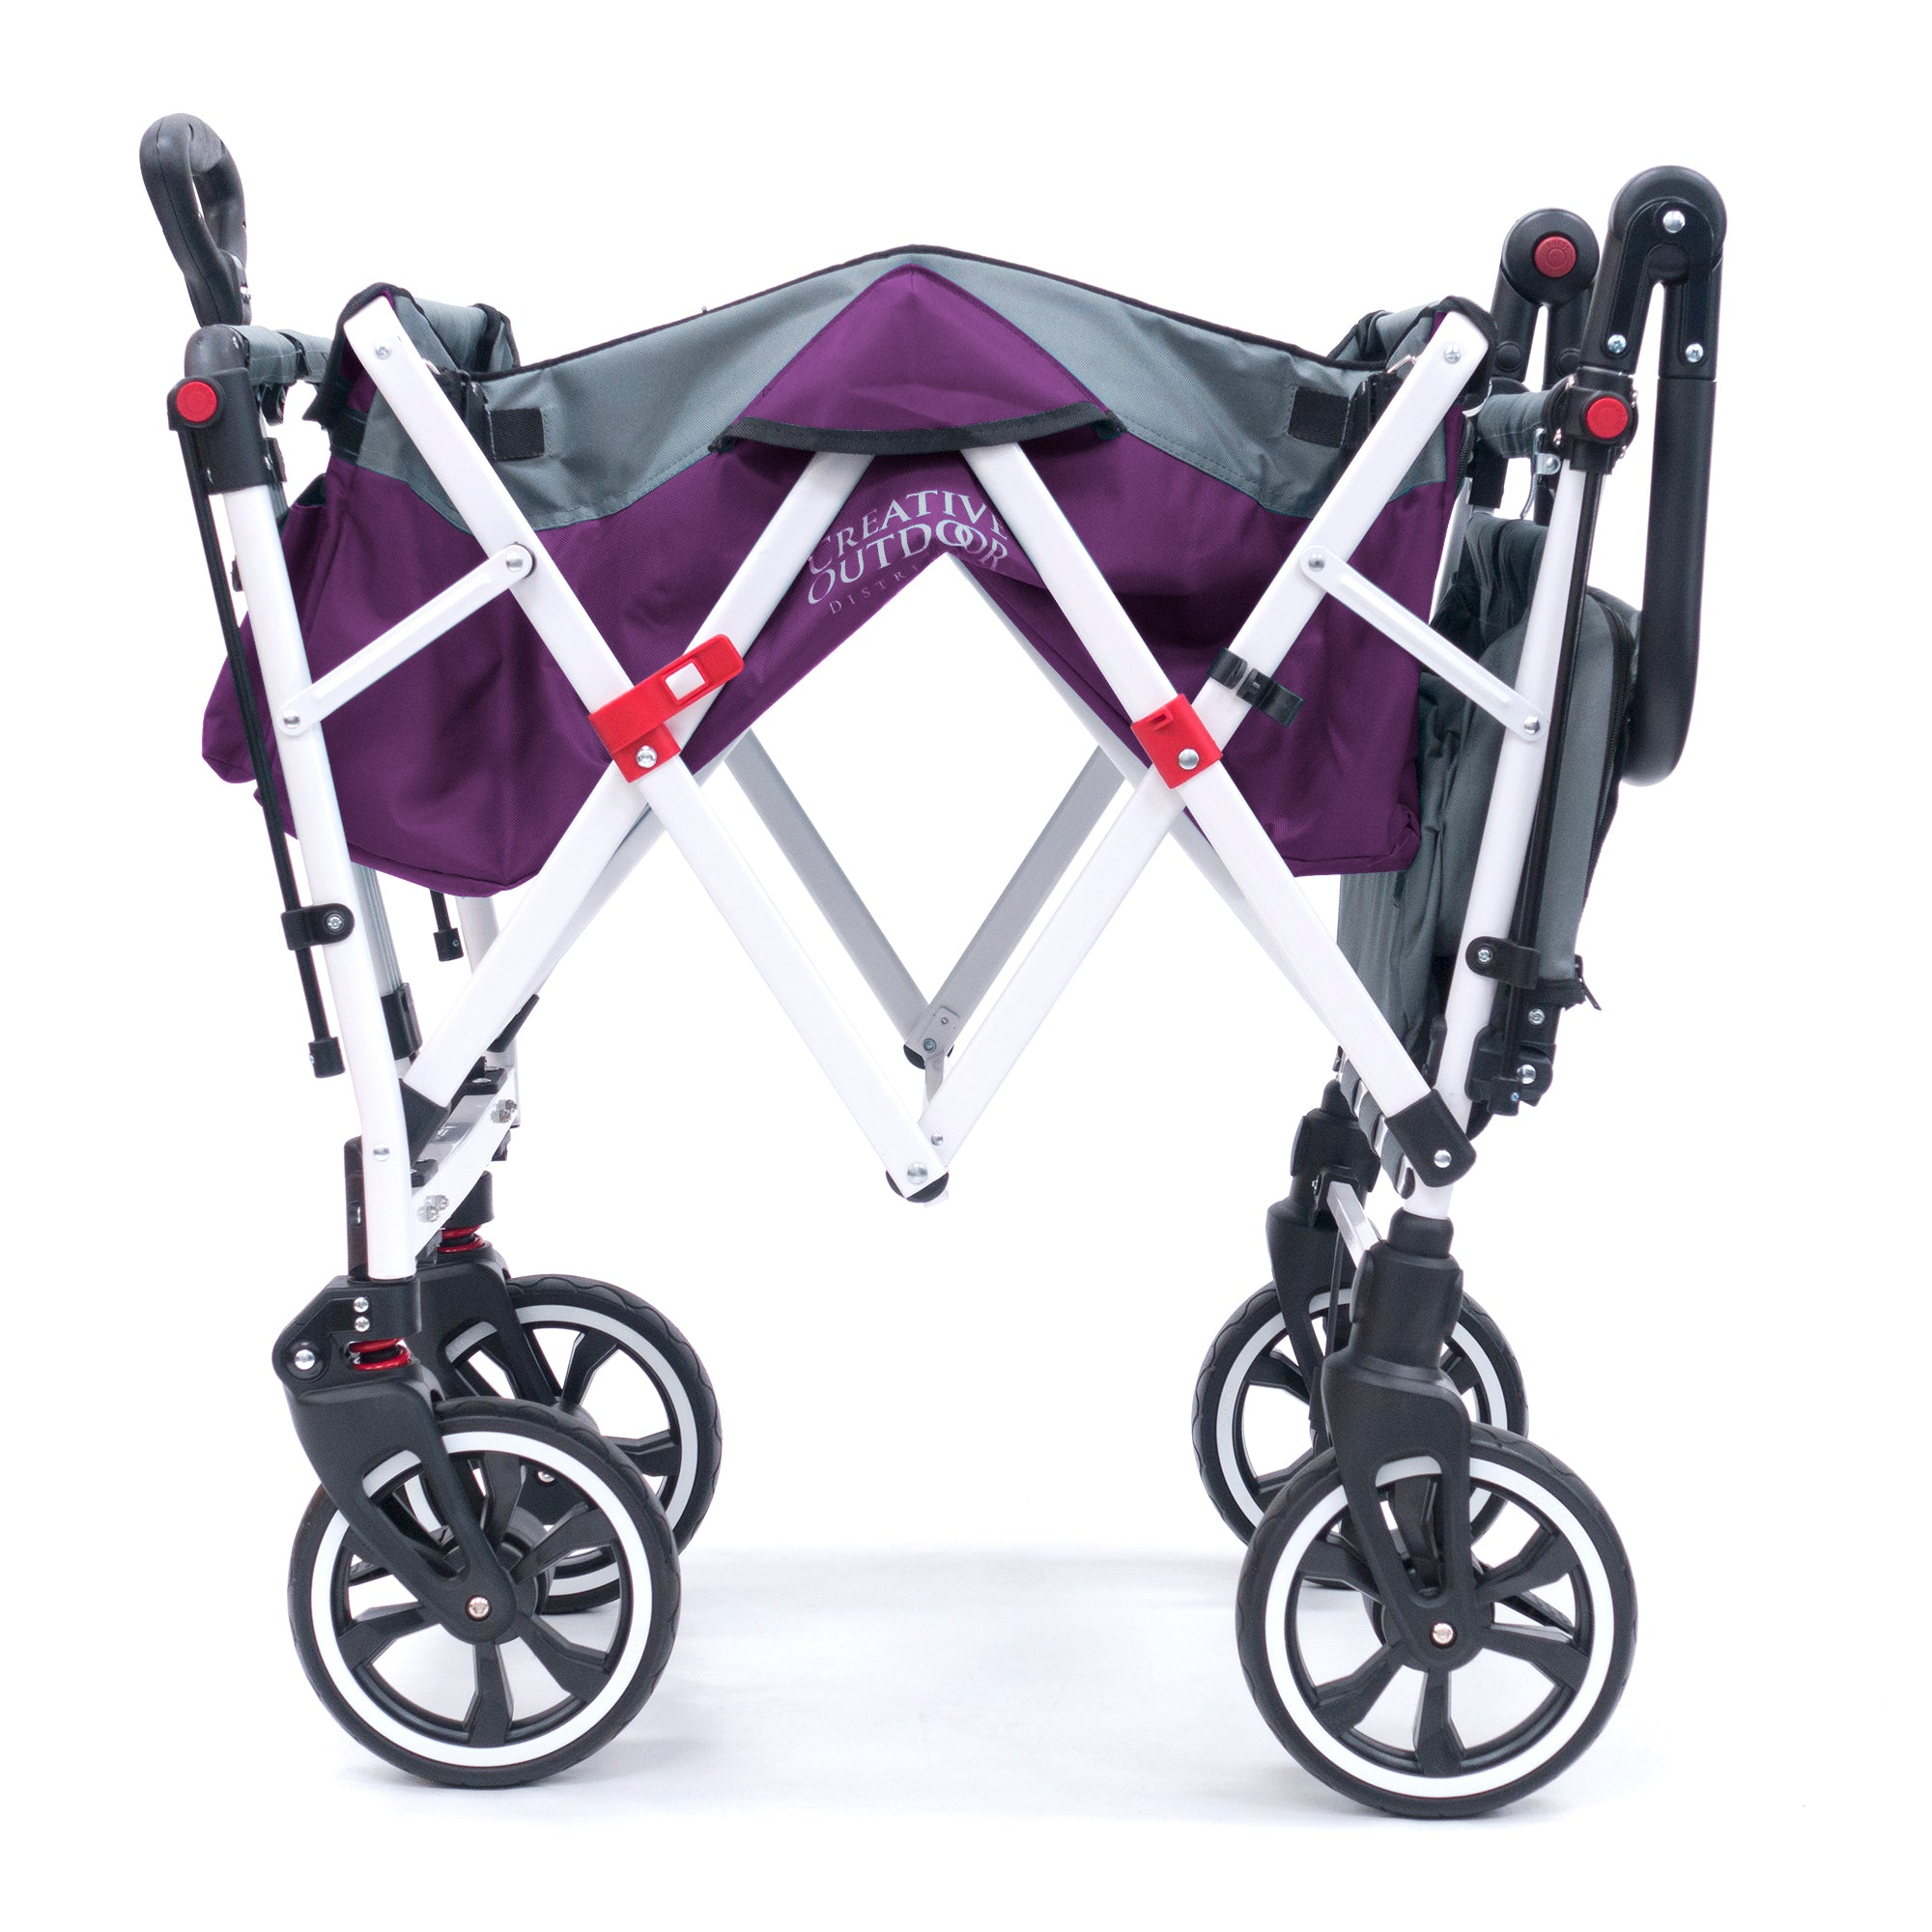 Push Pull TITANIUM SERIES Folding Wagon Stroller with Canopy | Purple